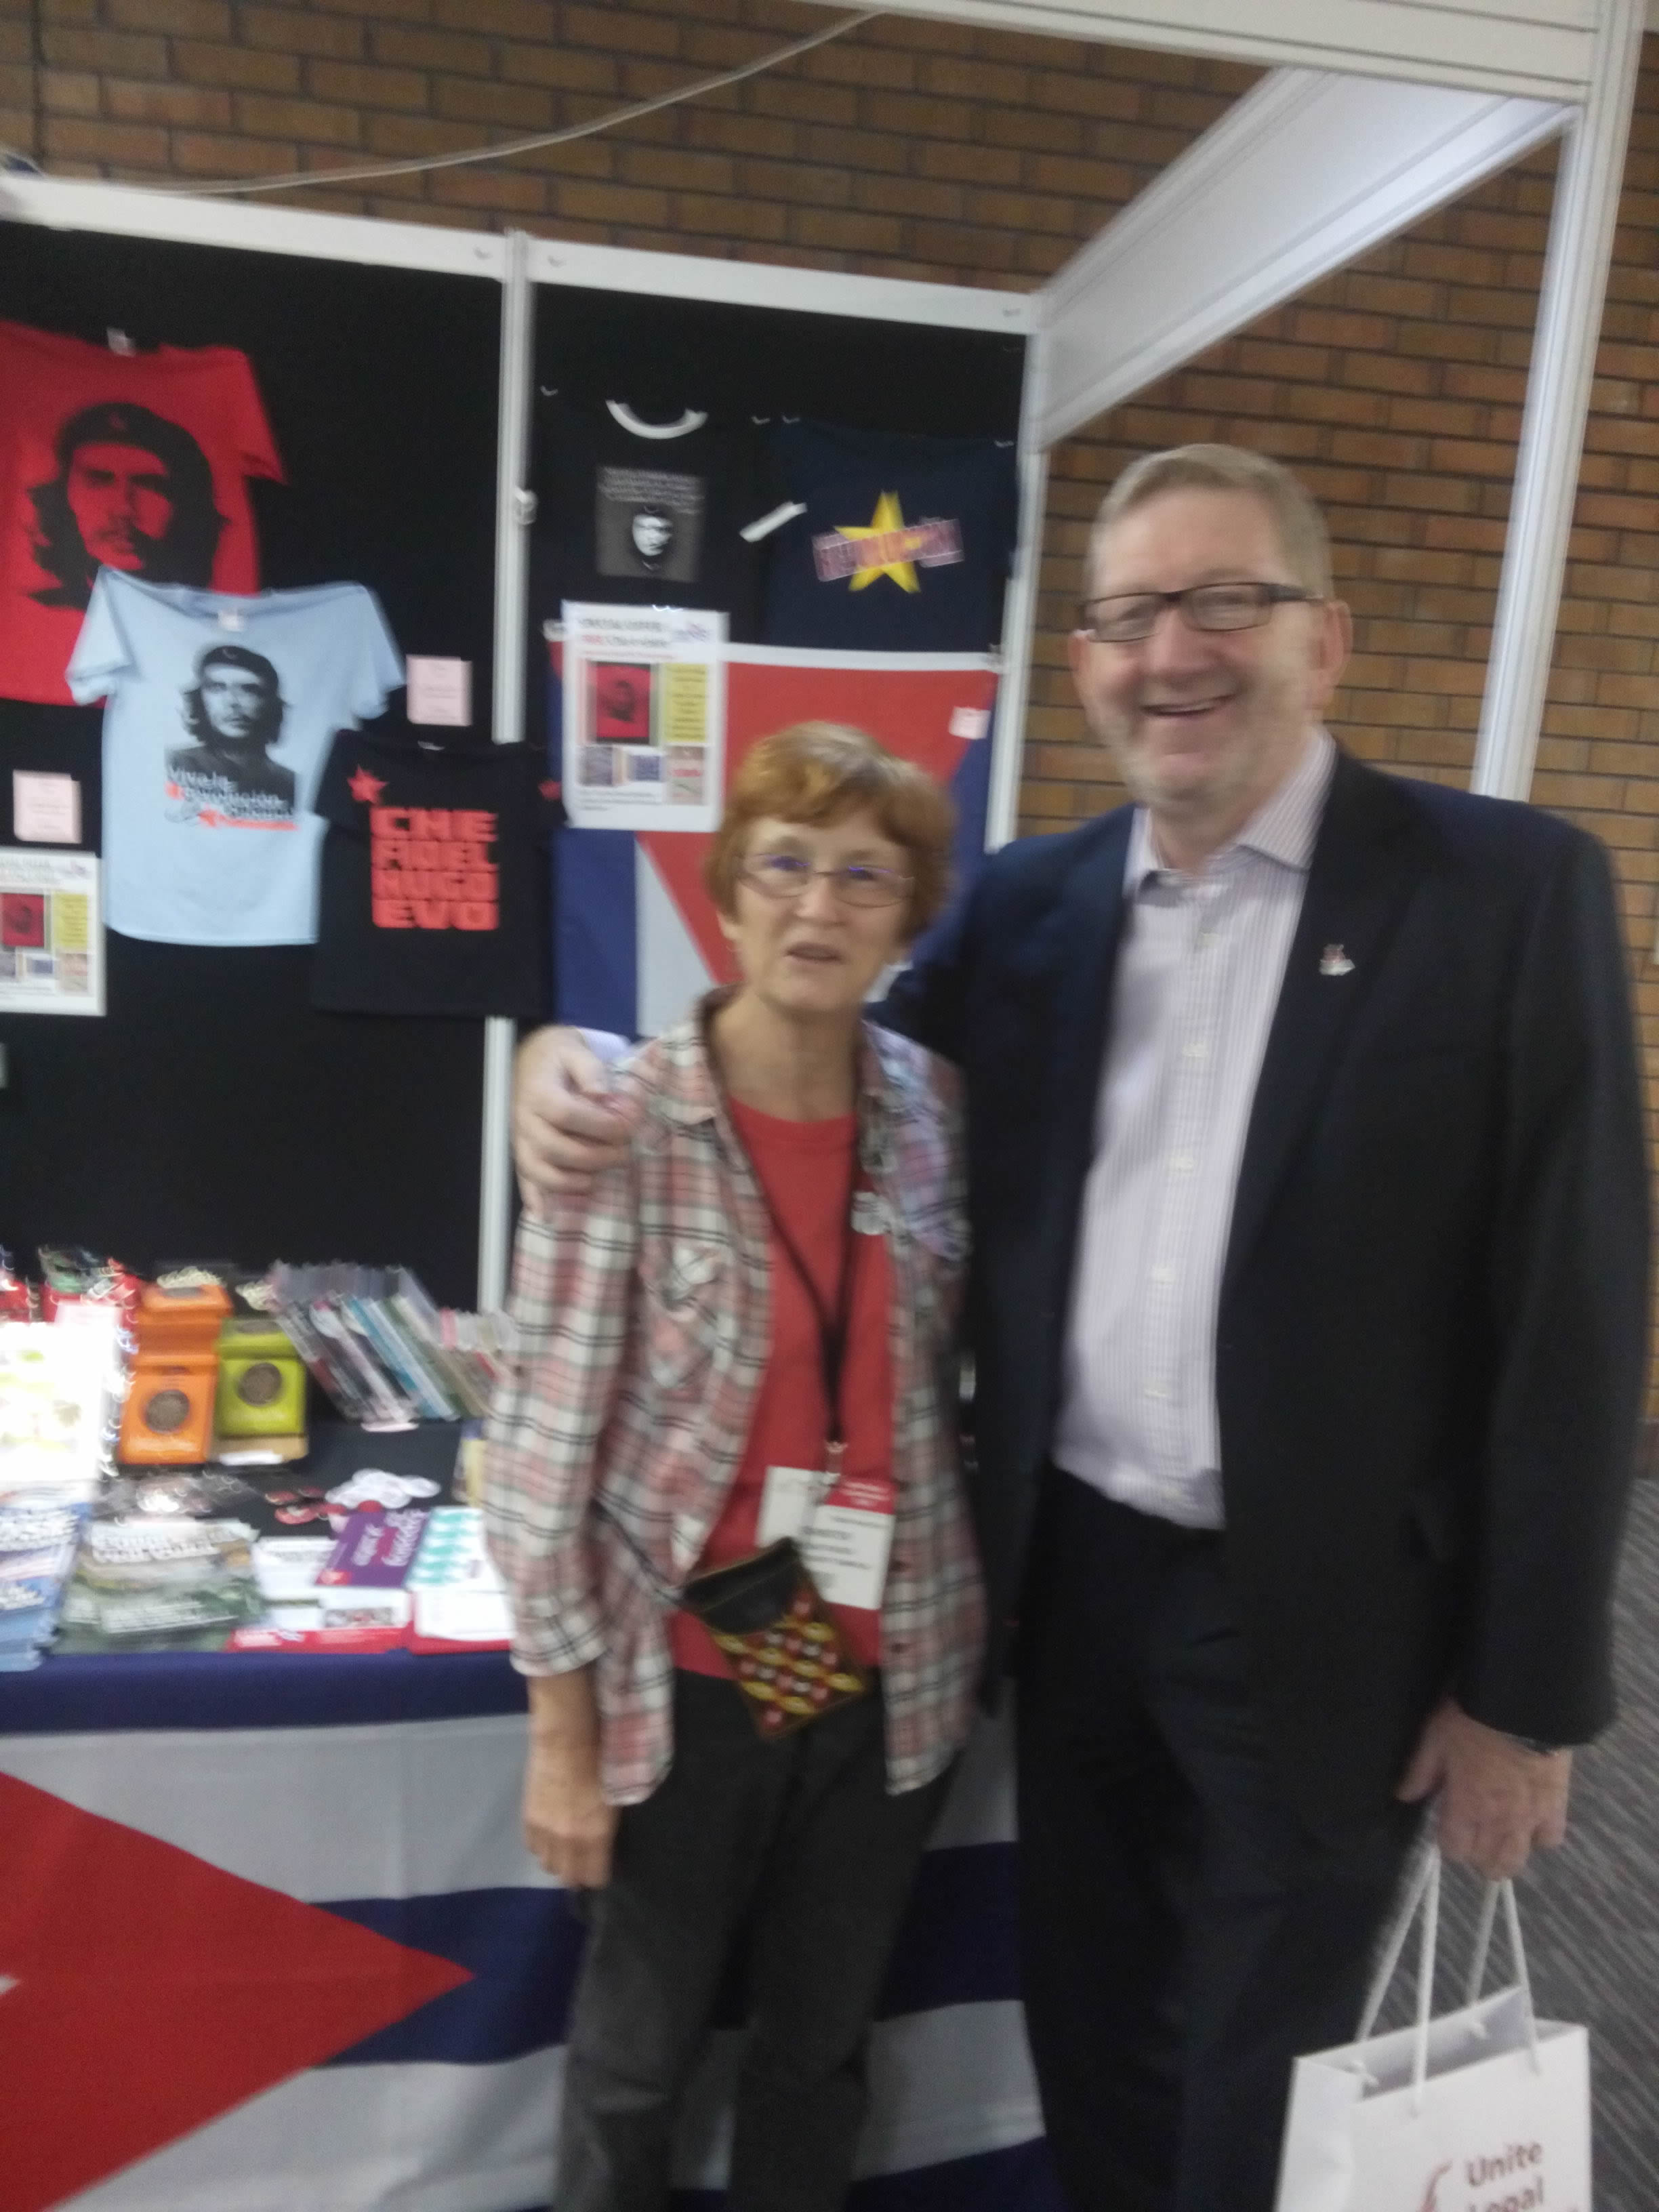 CSC stall at Unite the Union conference in Brighton. Pauline Fraser meets Len McCluskey.